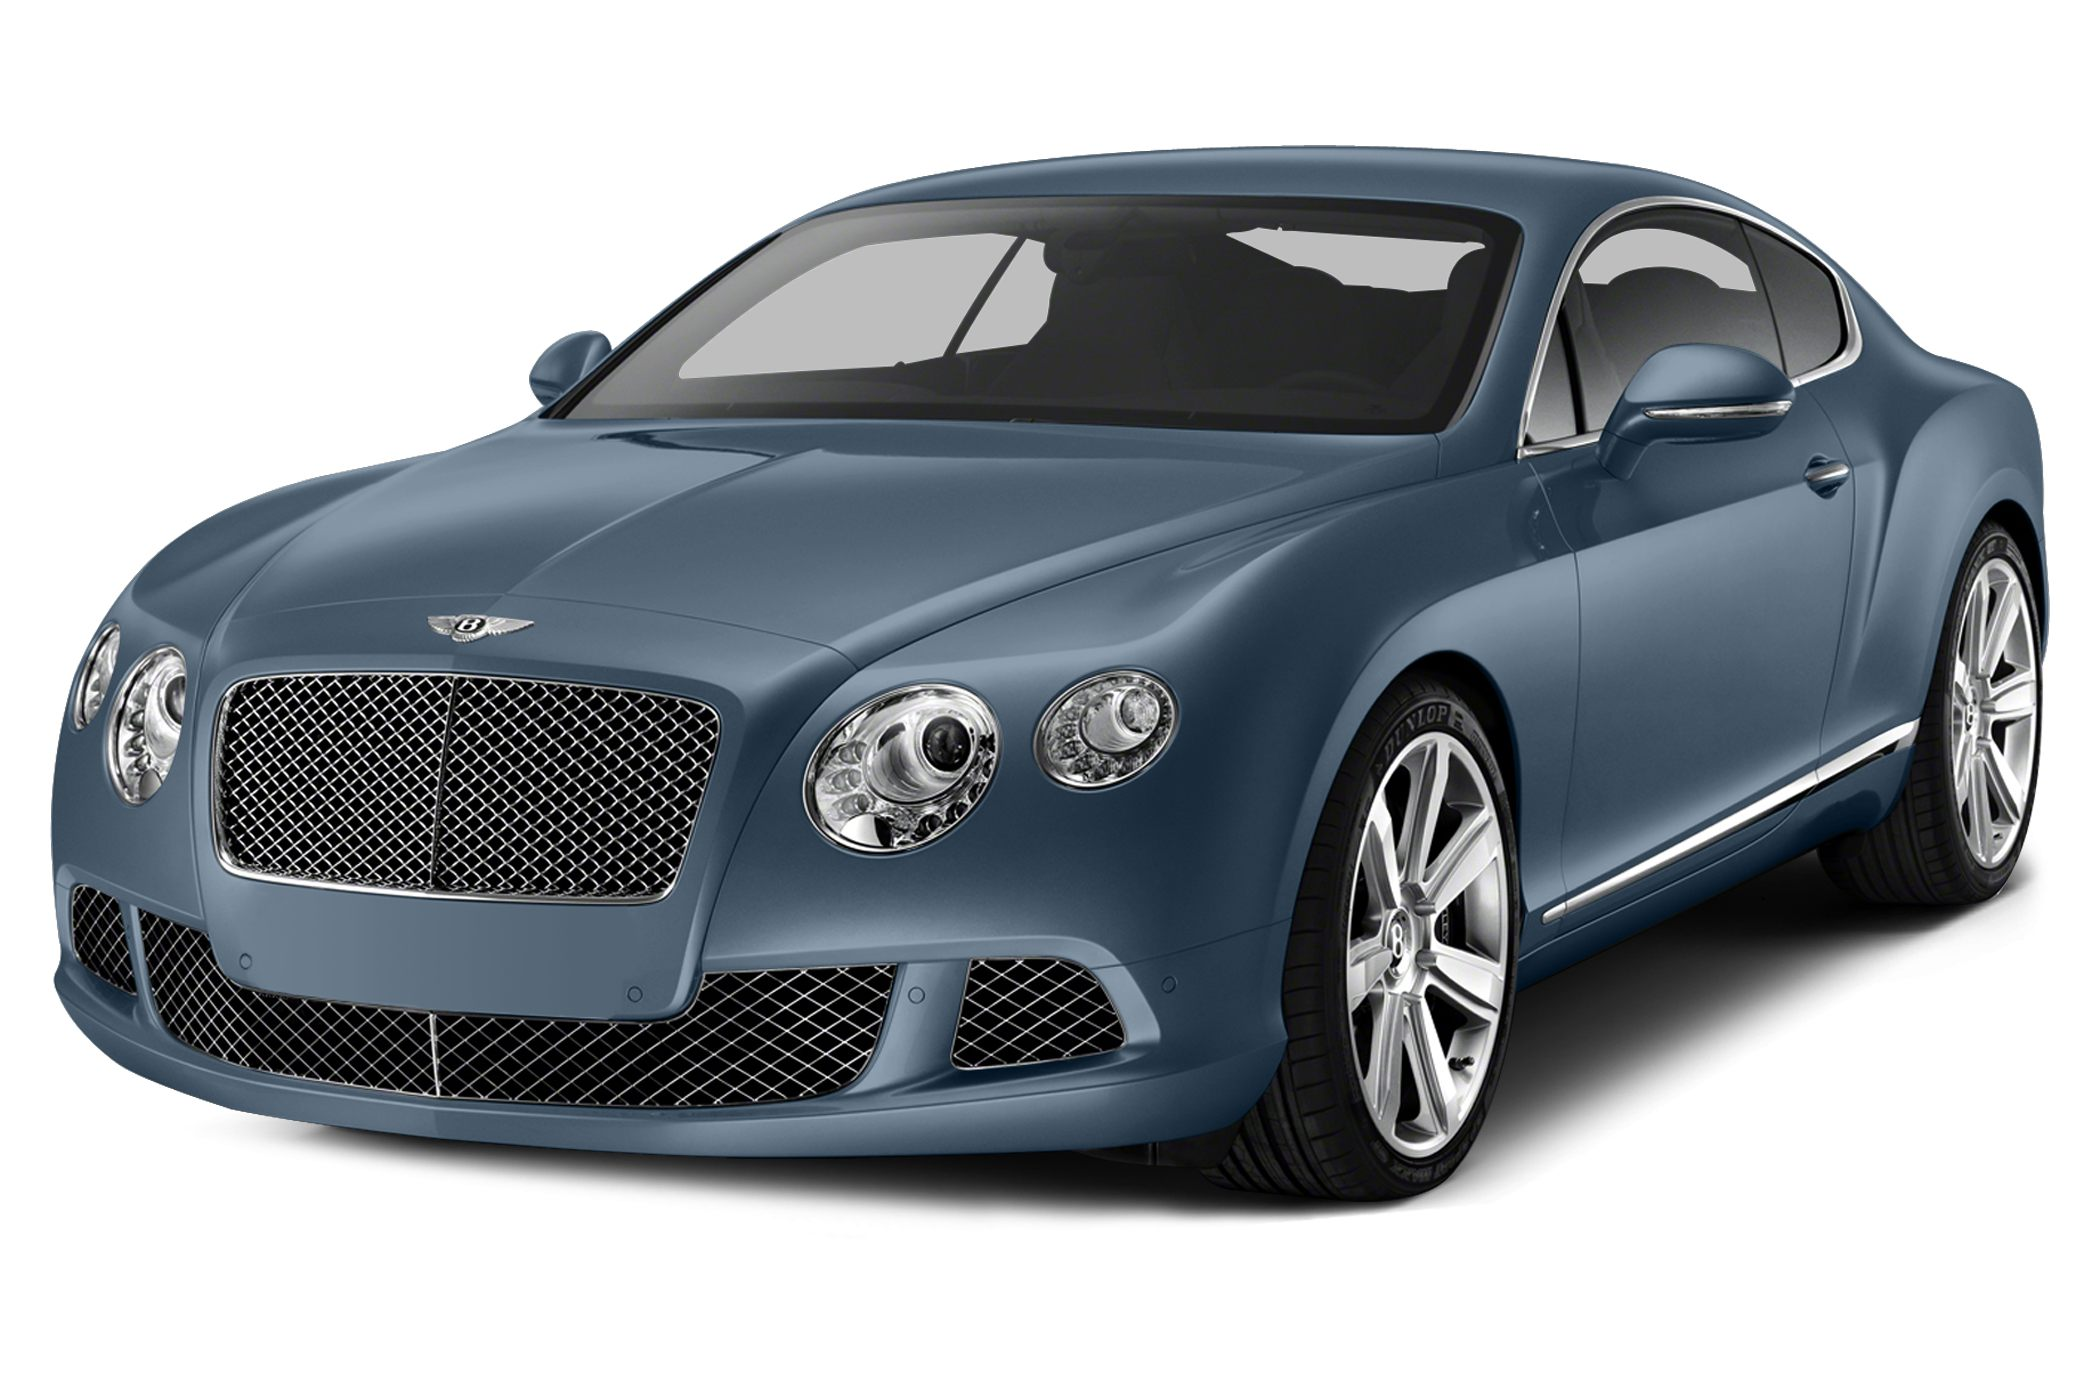 2015 Bentley Continental GT Base Coupe for sale in Miami for $230,665 with 21 miles